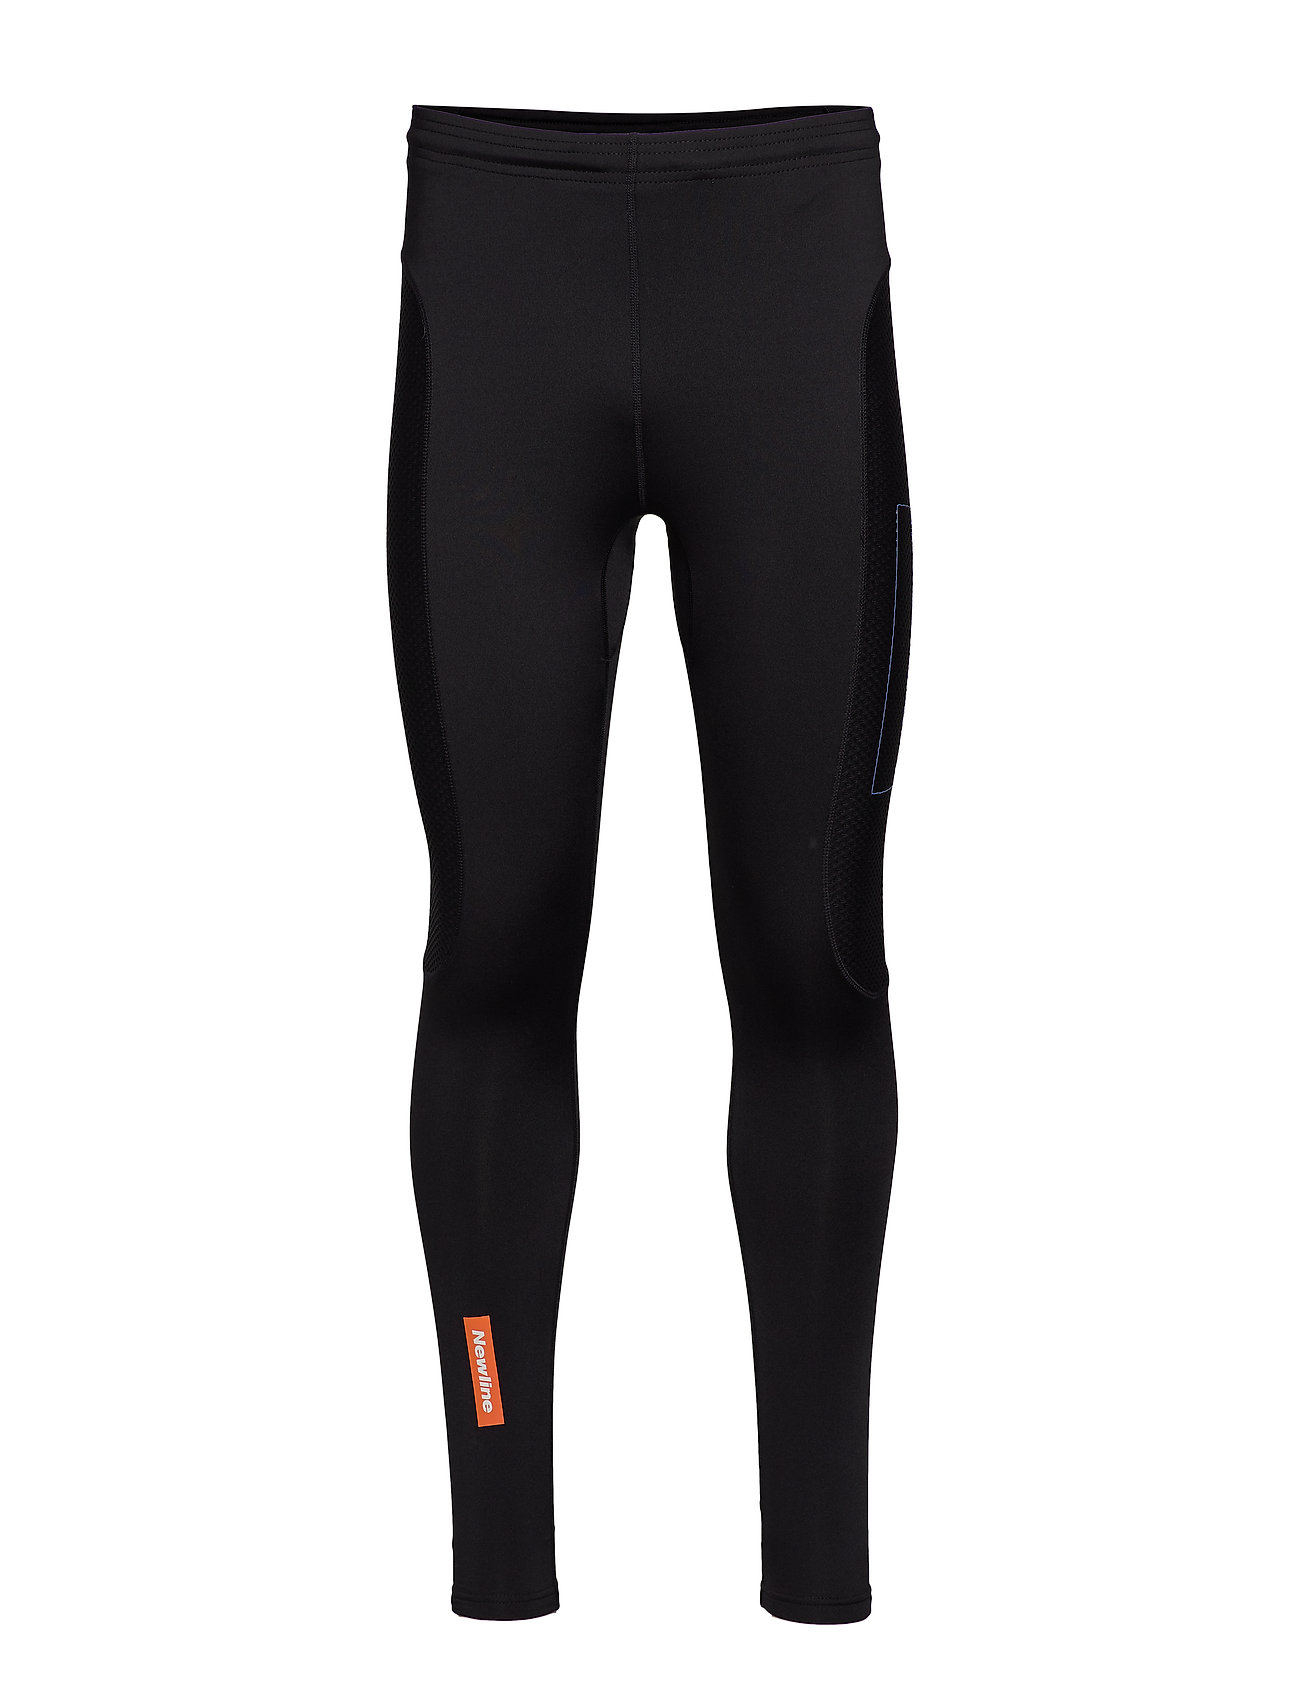 Newline Warm Tech Tights - BLACK